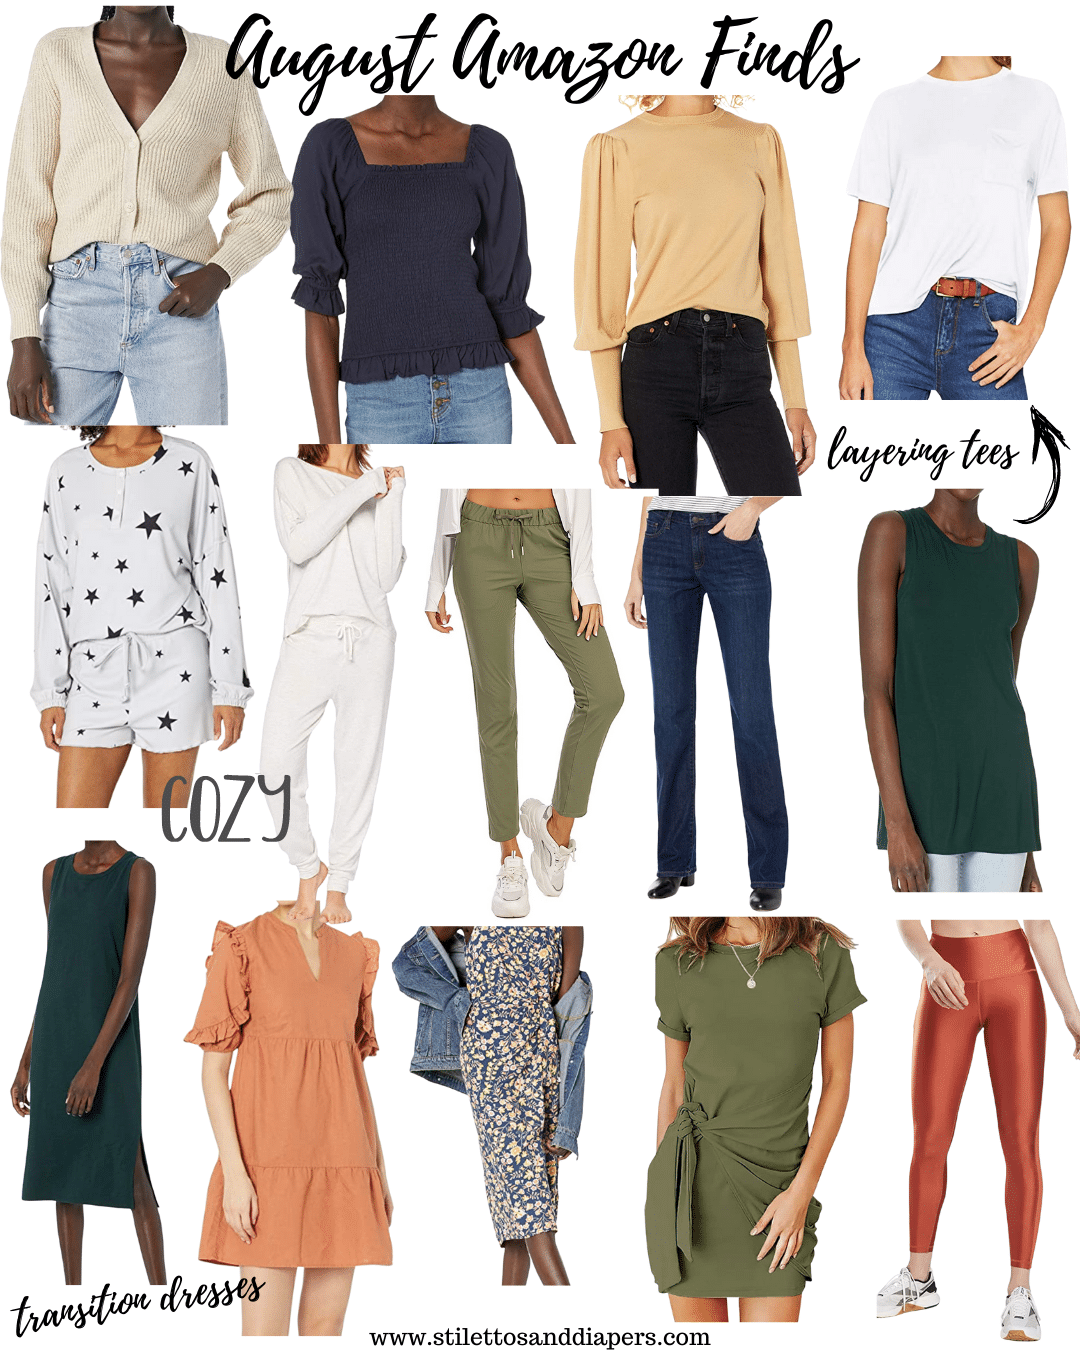 August Amazon Finds, Stilettos and Diapers, Best amazon fashion